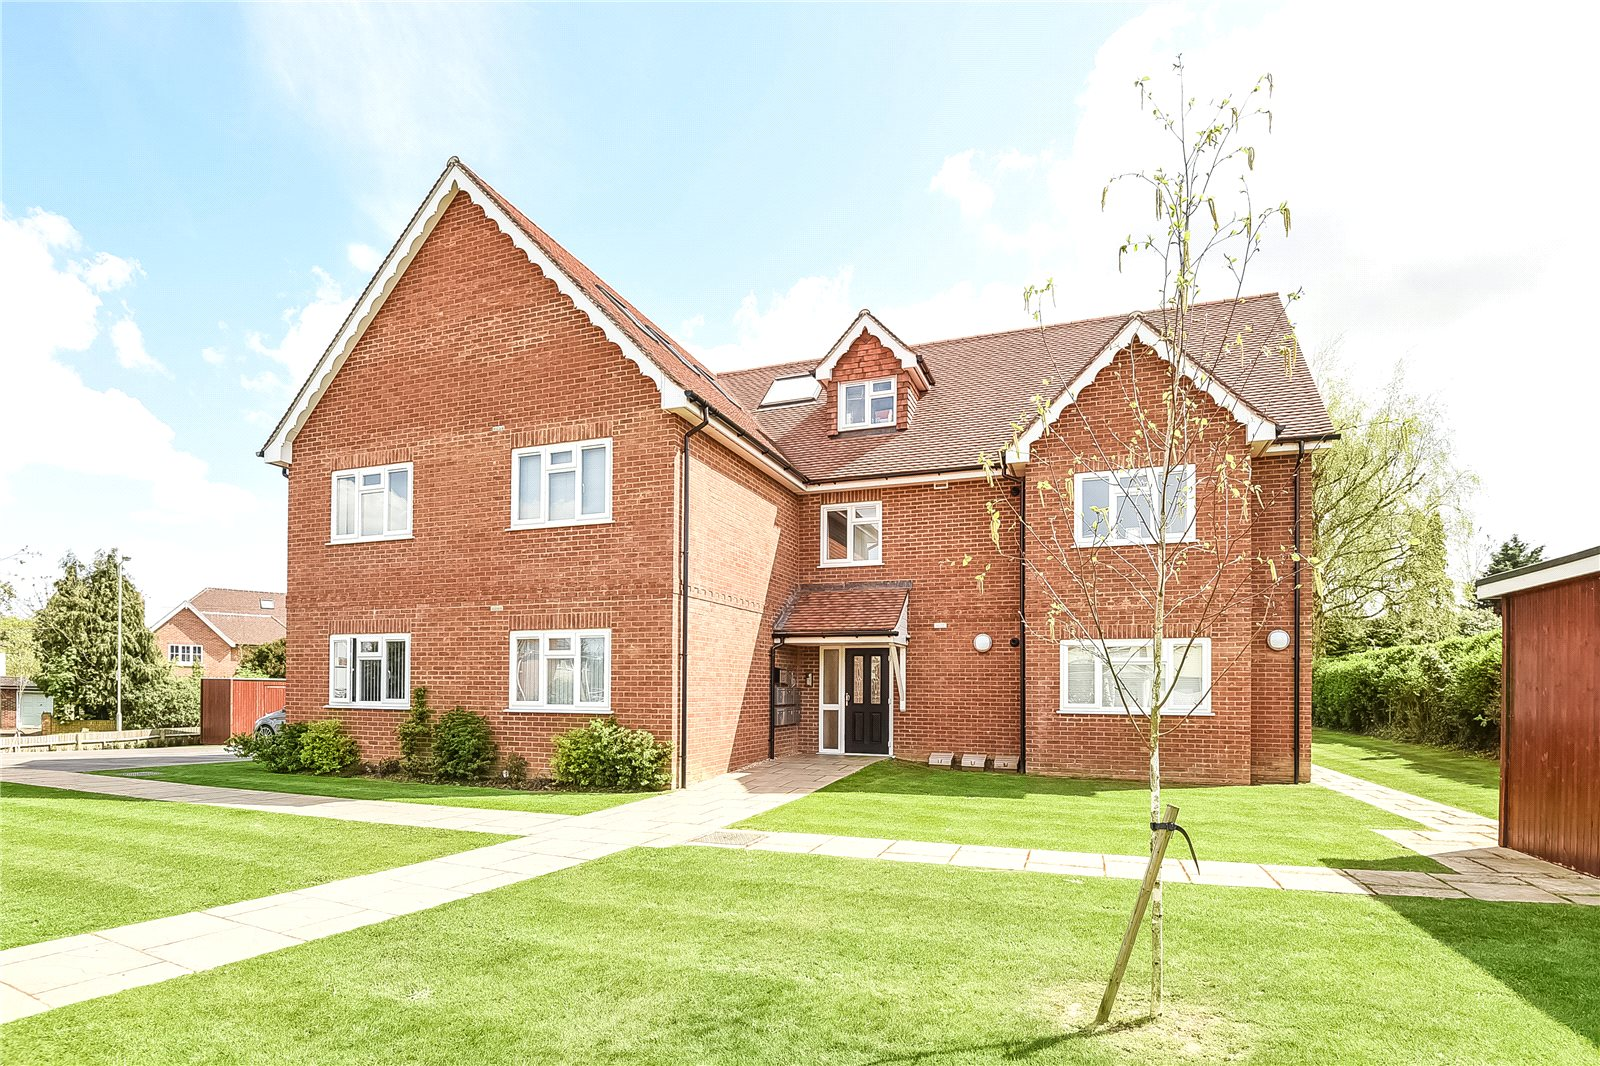 2 Bedrooms Apartment Flat for rent in Elm Road, Earley, Reading, Berkshire, RG6